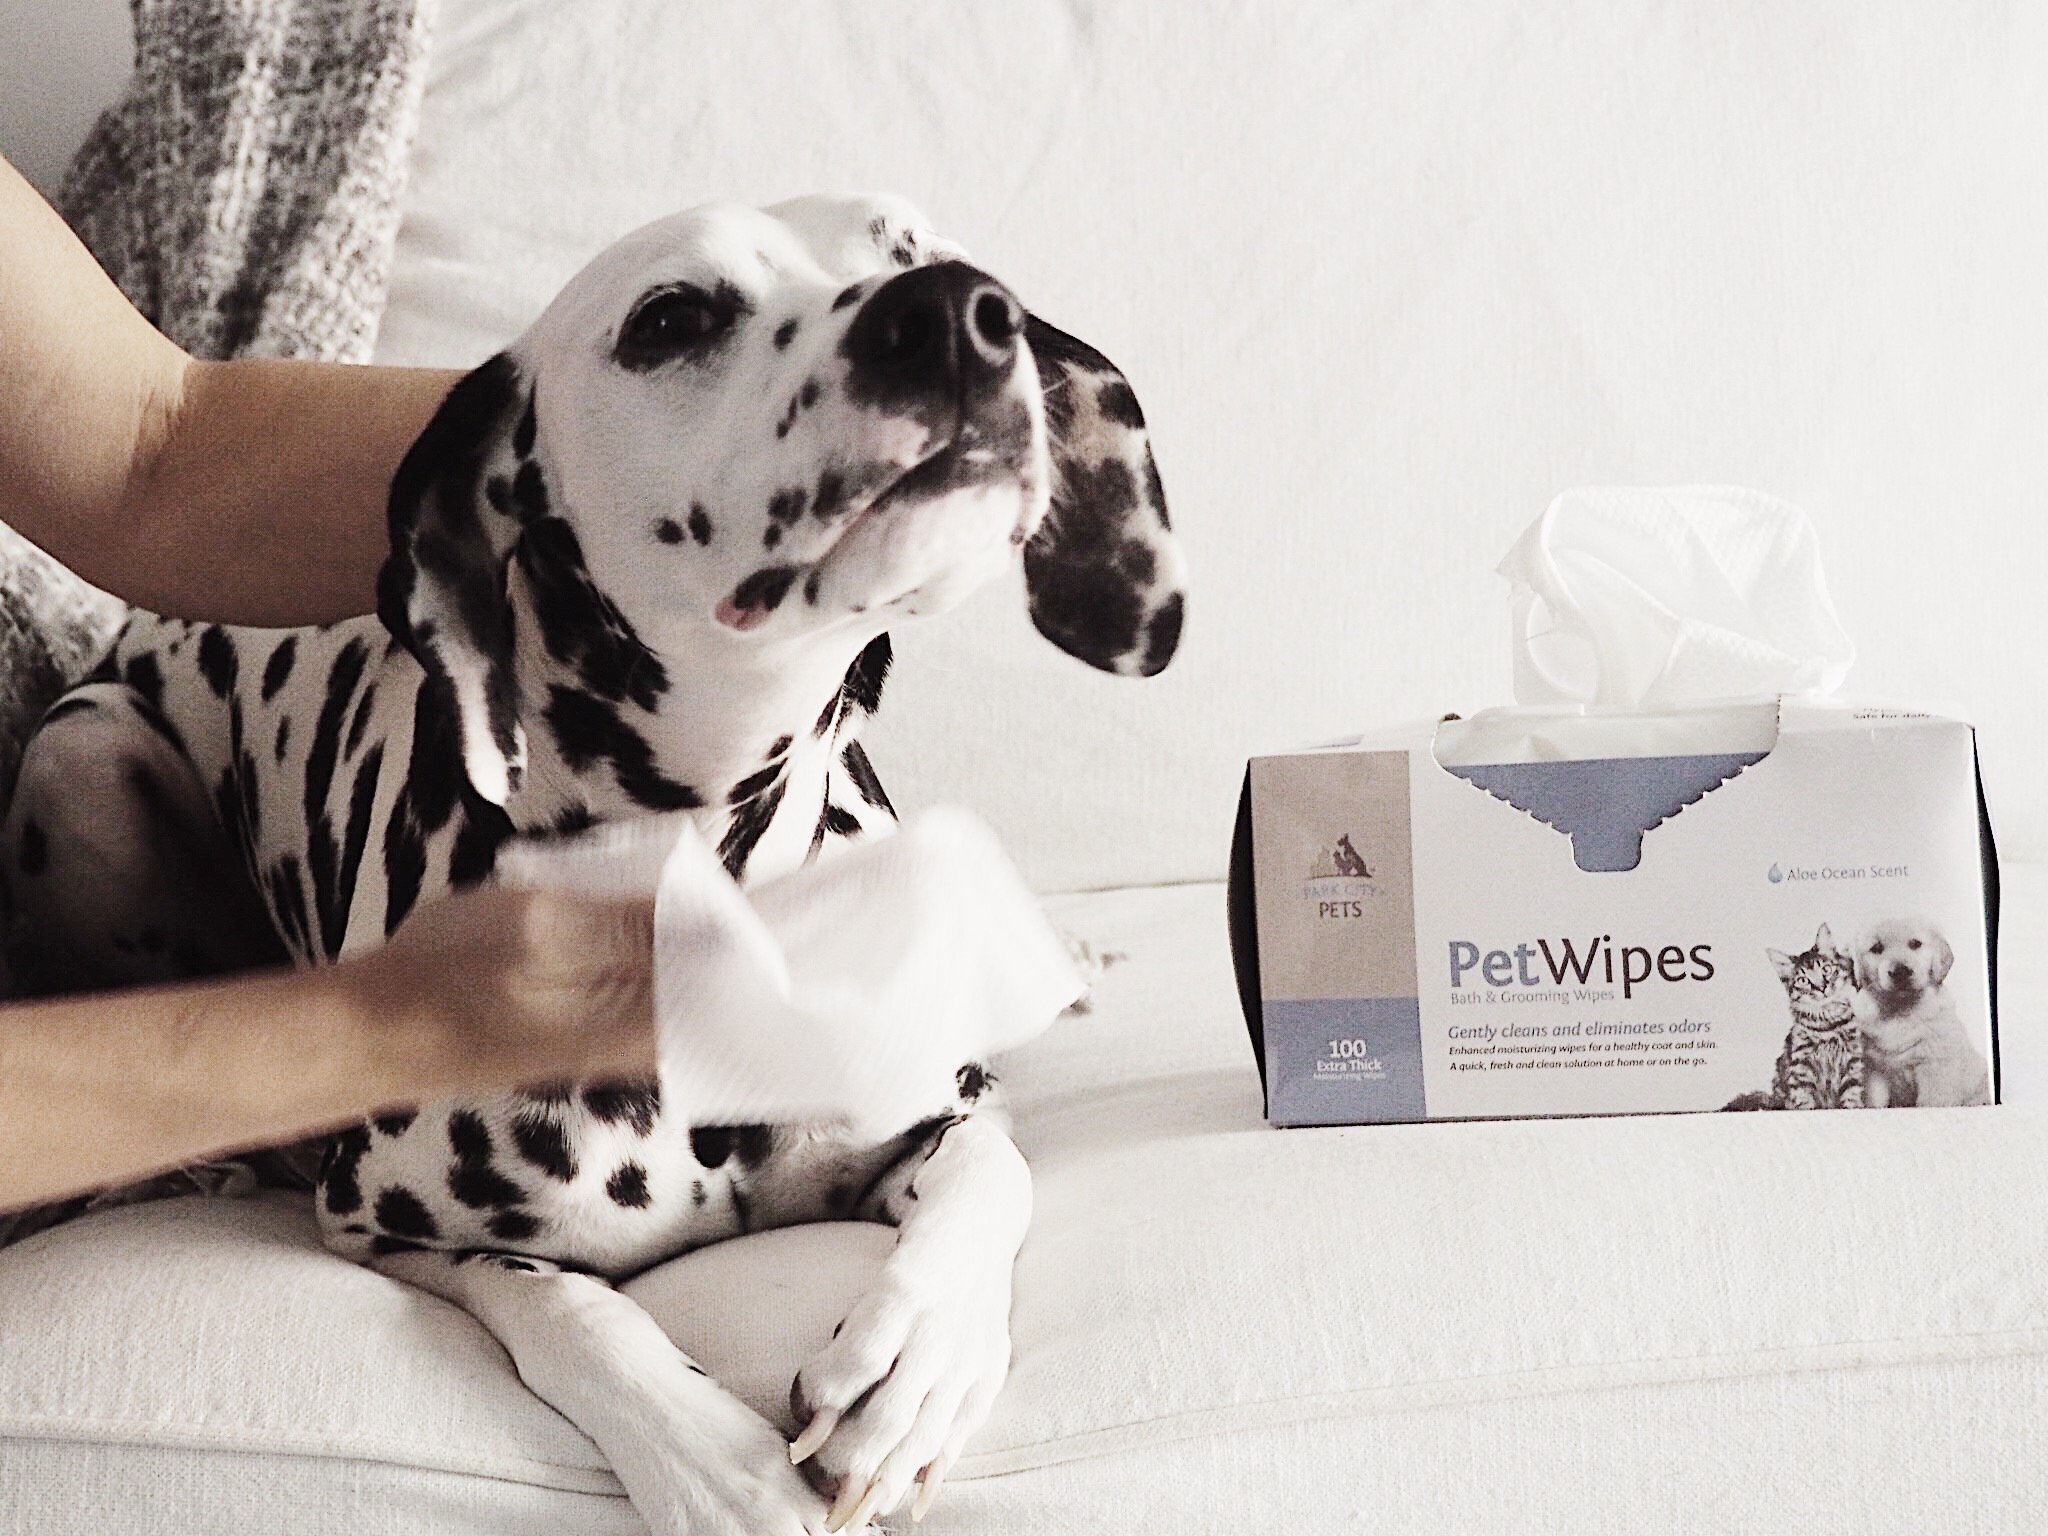 Professional Pet Grooming Wipes for Dogs and Cats, 100 Count, 100% Natural & Organic Extracts, Extra Thick Cloths, Ultra Soft, Extra Large, Hypoallergenic, Cruelty Free & Vegan - Park City Pets by Park City Pet (Image #7)